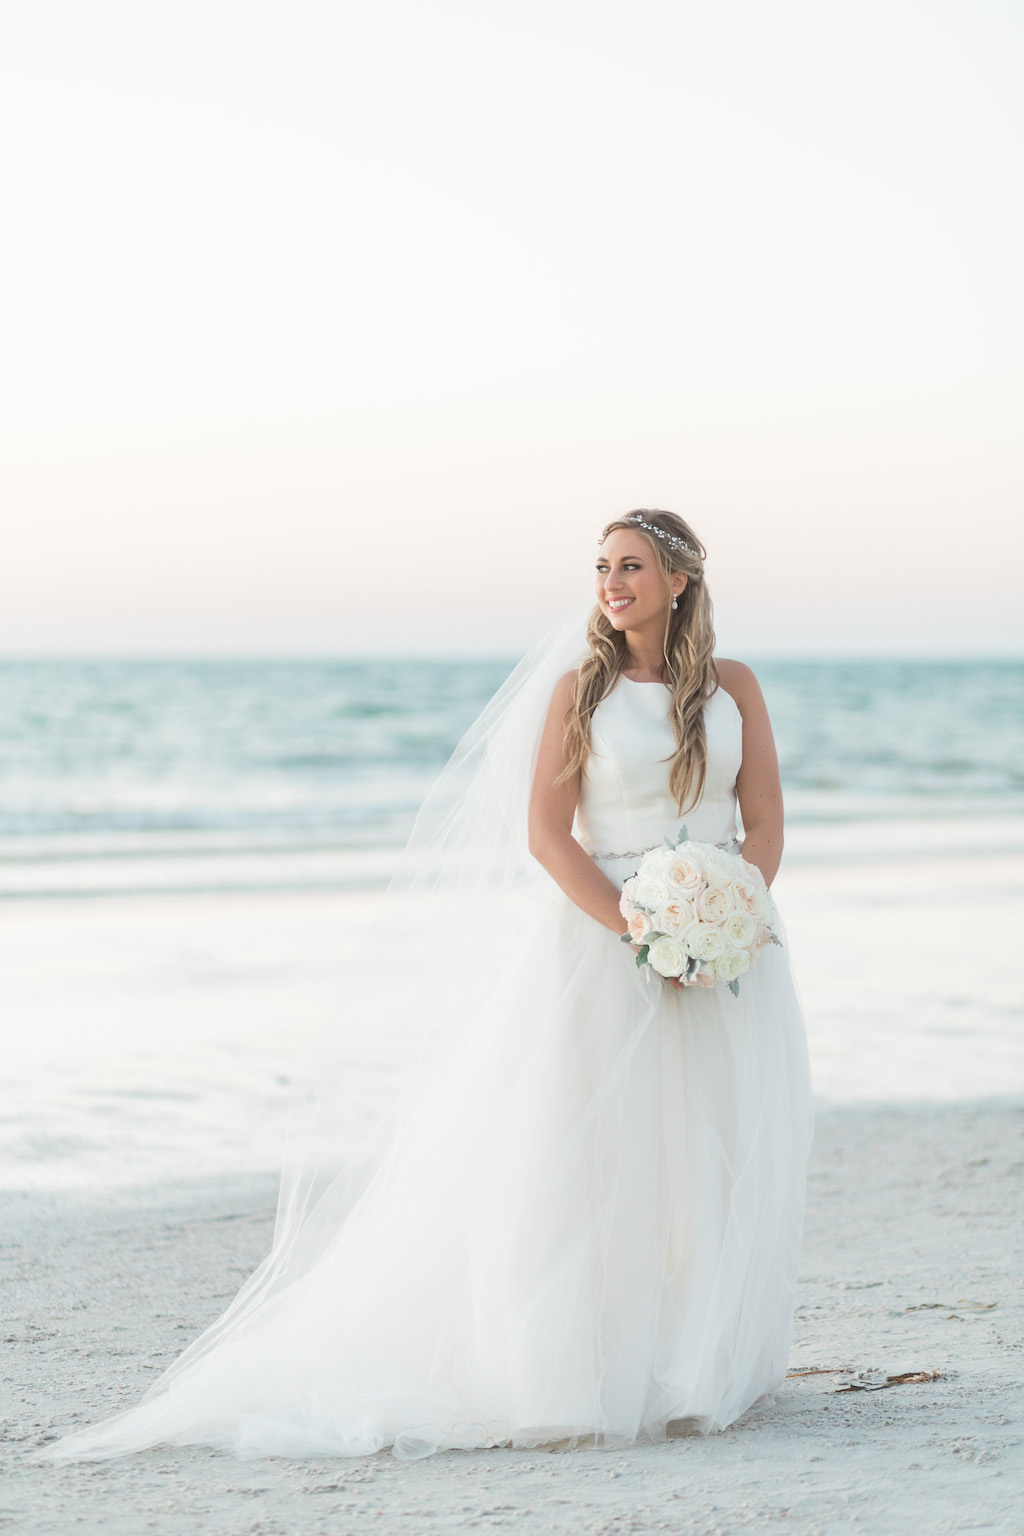 Outdoor Beach Wedding Portrait, Bride in Halter Ballgown Hayley Paige Wedding Dress with White Rose Bouquet and Jeweled Headband   Whimsical Clearwater Beach Wedding